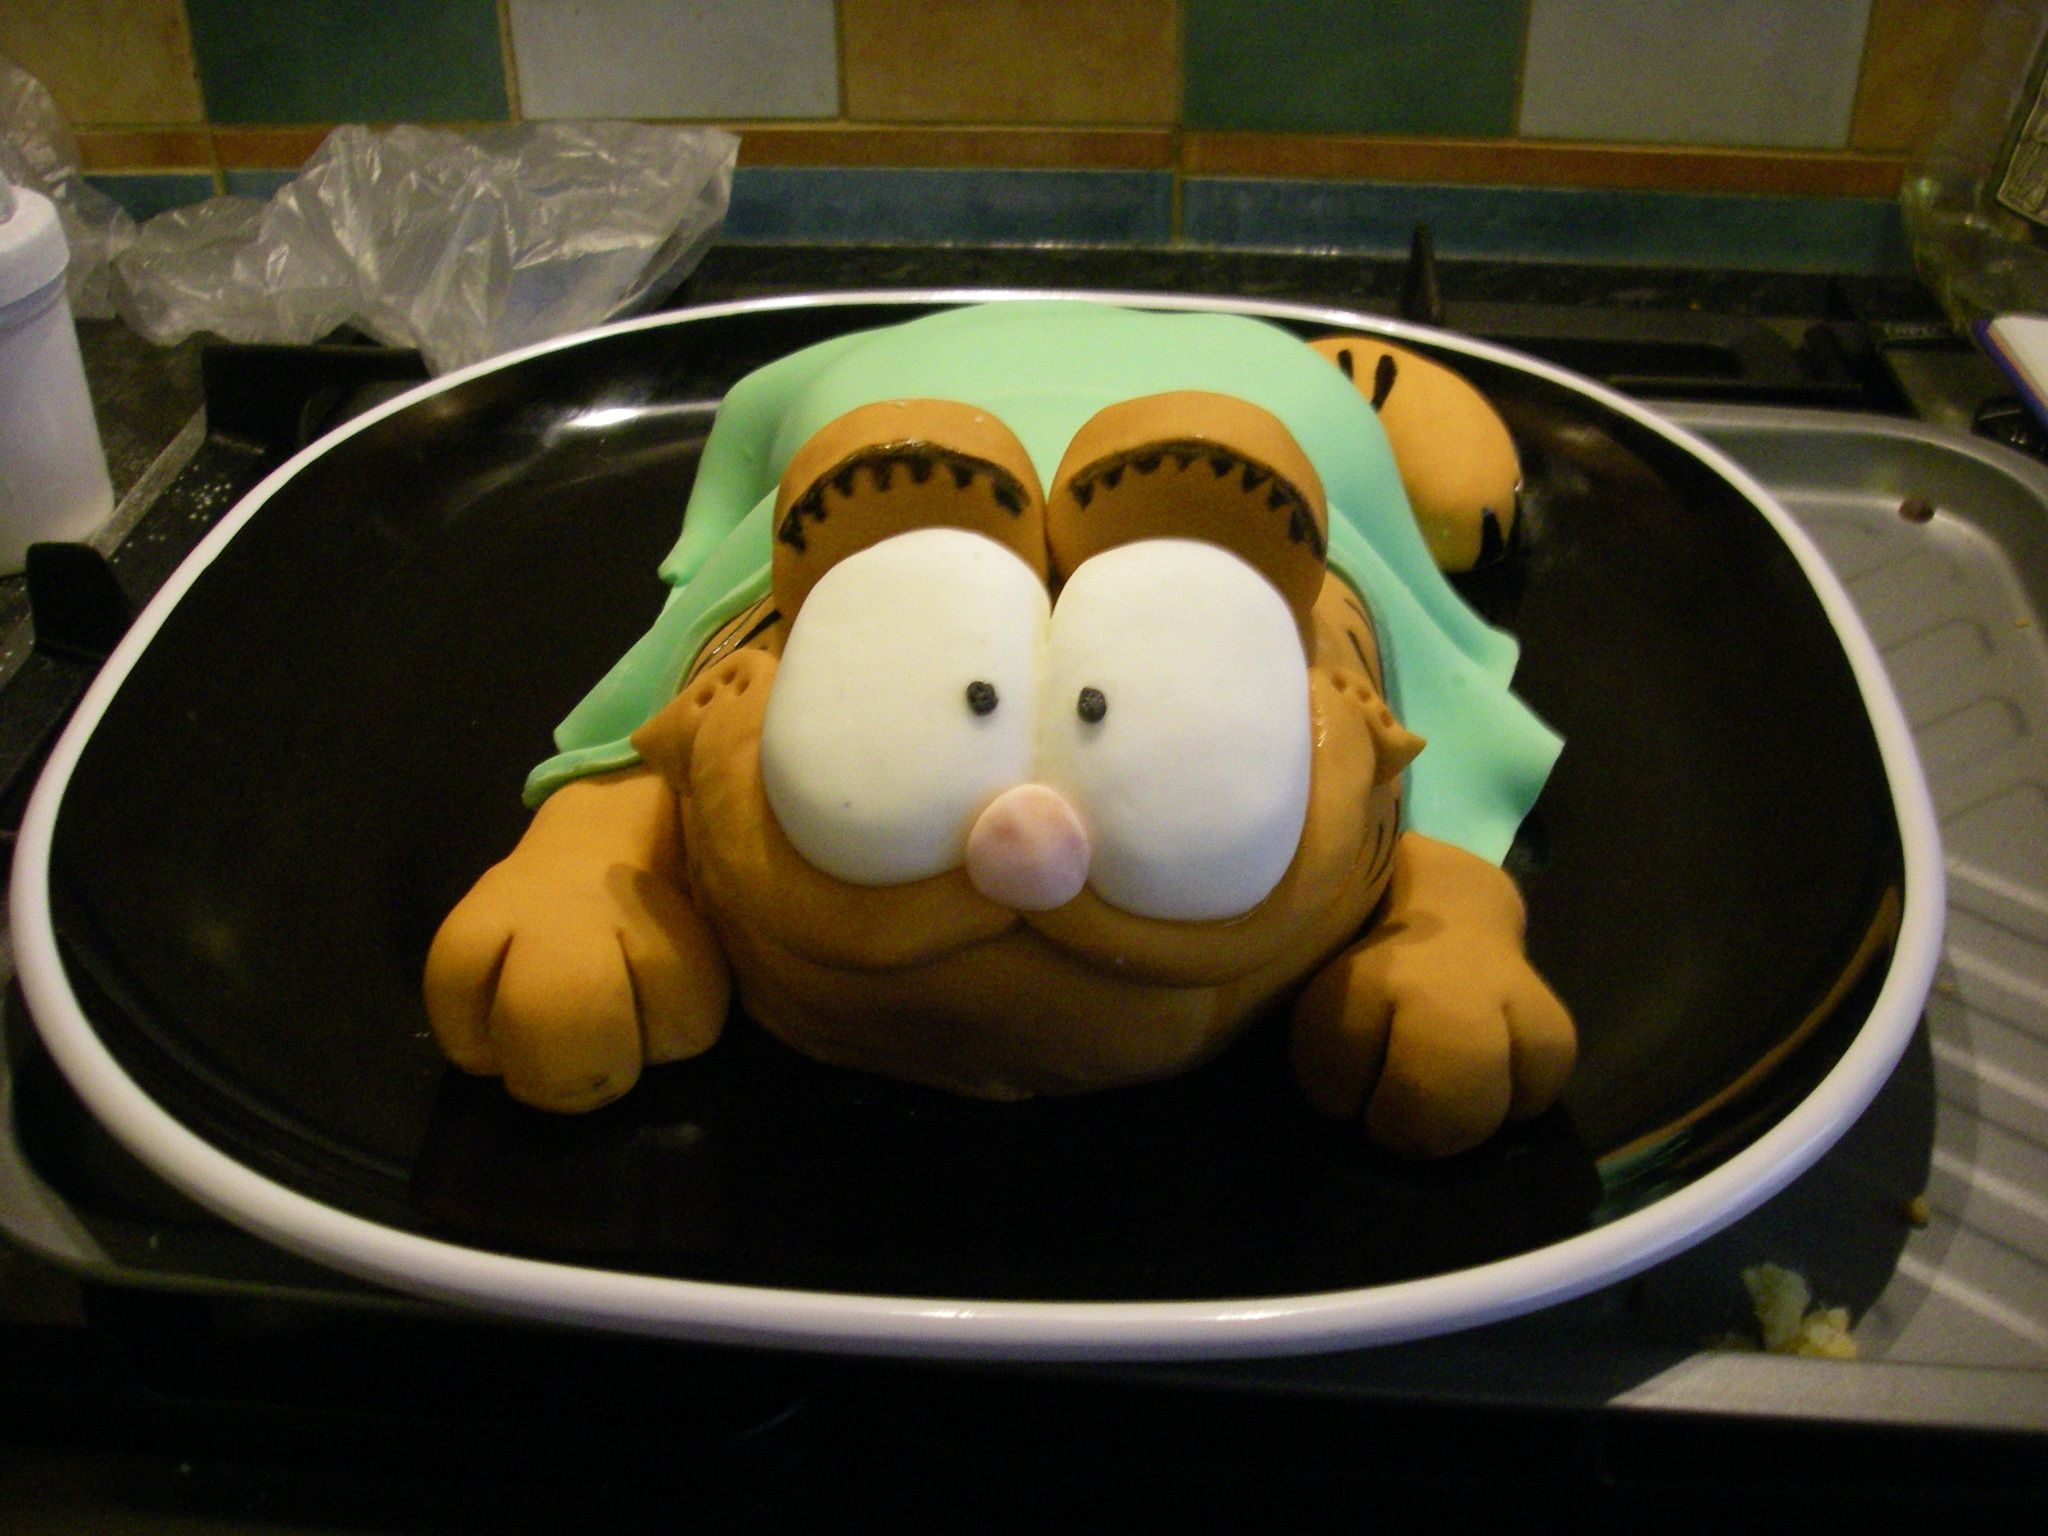 Garfield - inspired by Debbie Brown